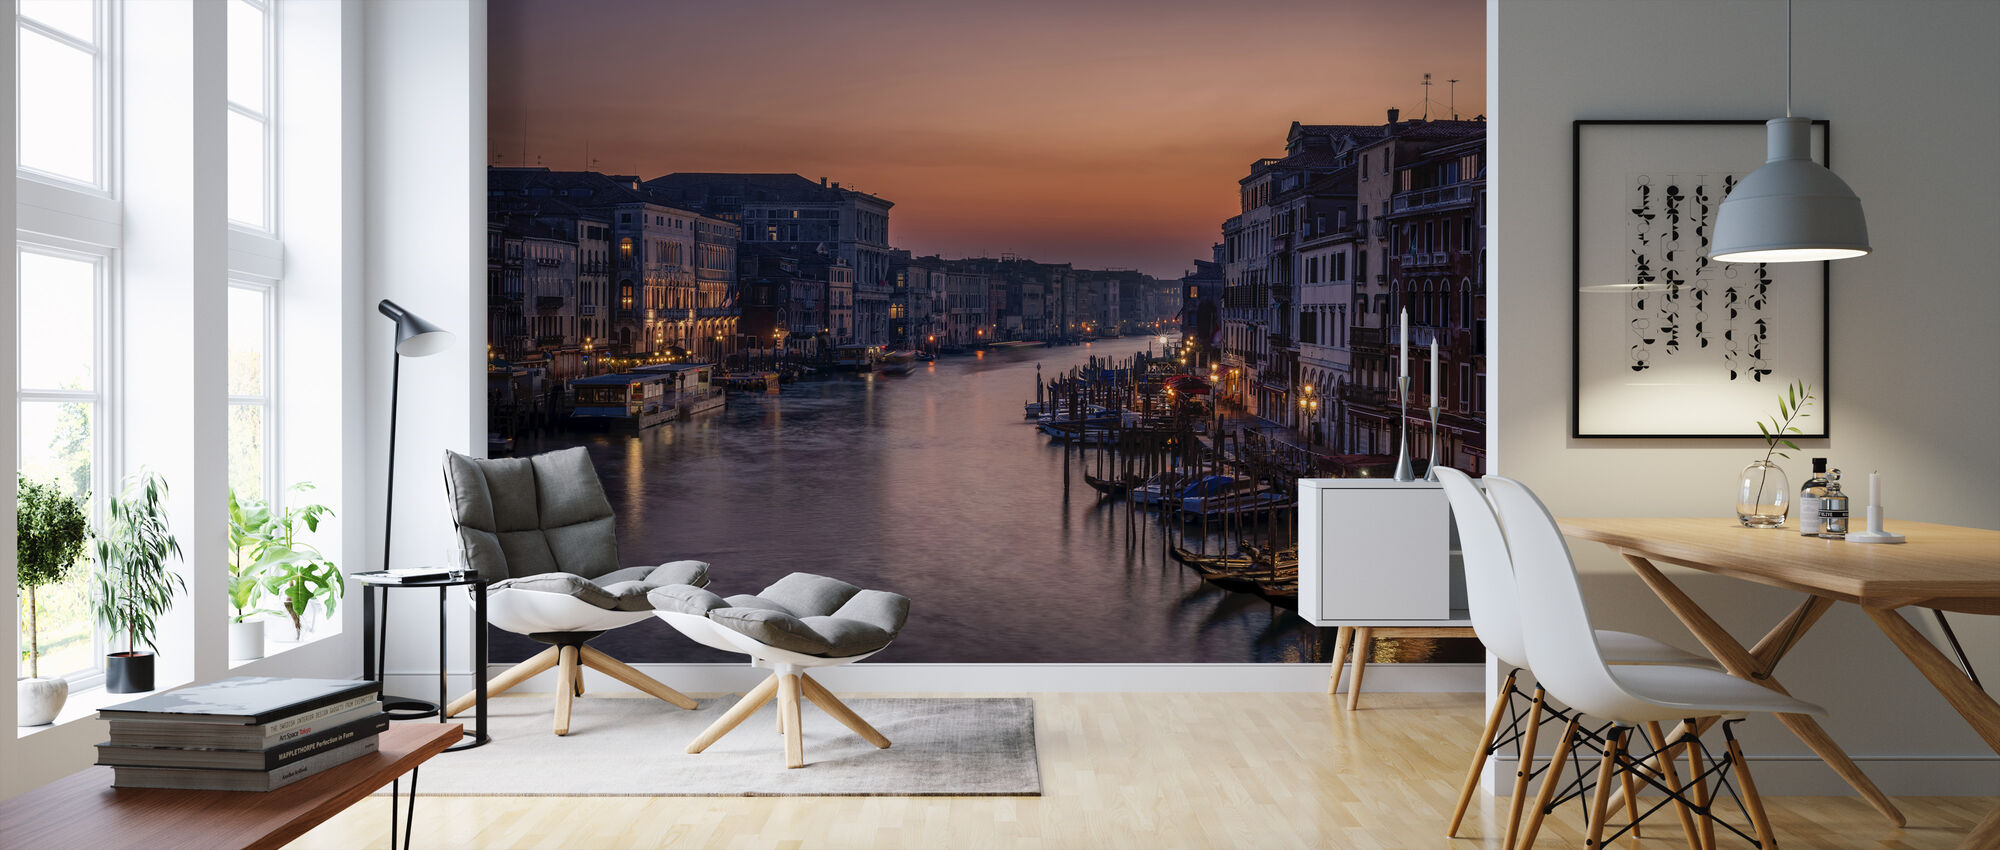 Venice Grand Canal at Sunset - Wallpaper - Living Room